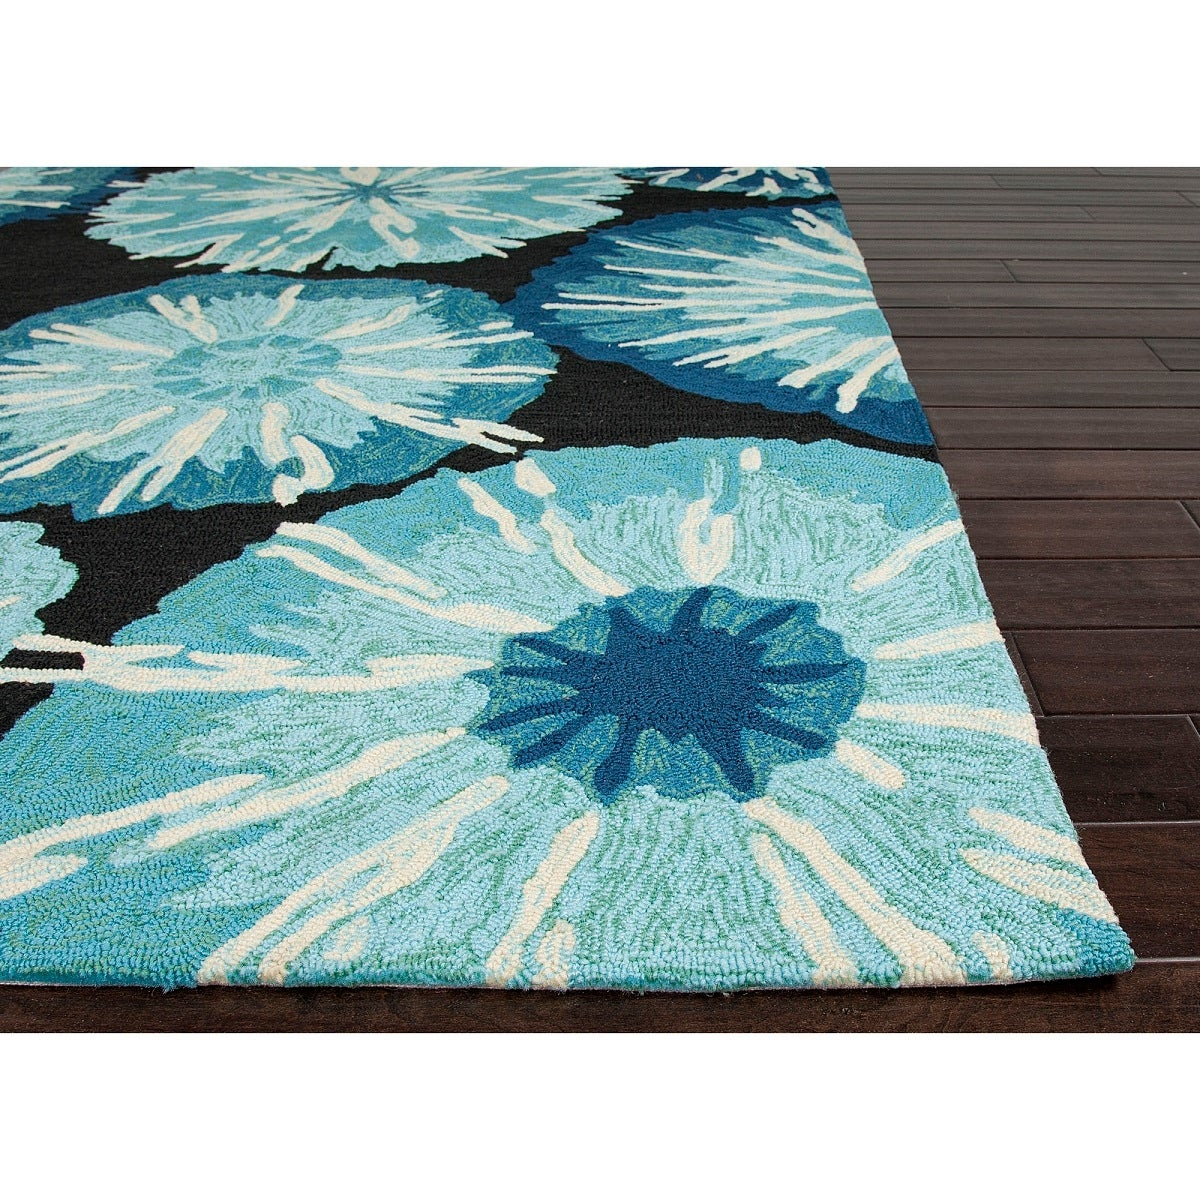 Picture of: Shop 2 X 3 Baby Blue Cobalt Blue Black And White Starburst Design Outdoor Area Throw Rug 2 Footx3 Foot Free Shipping Today Overstock 16671045